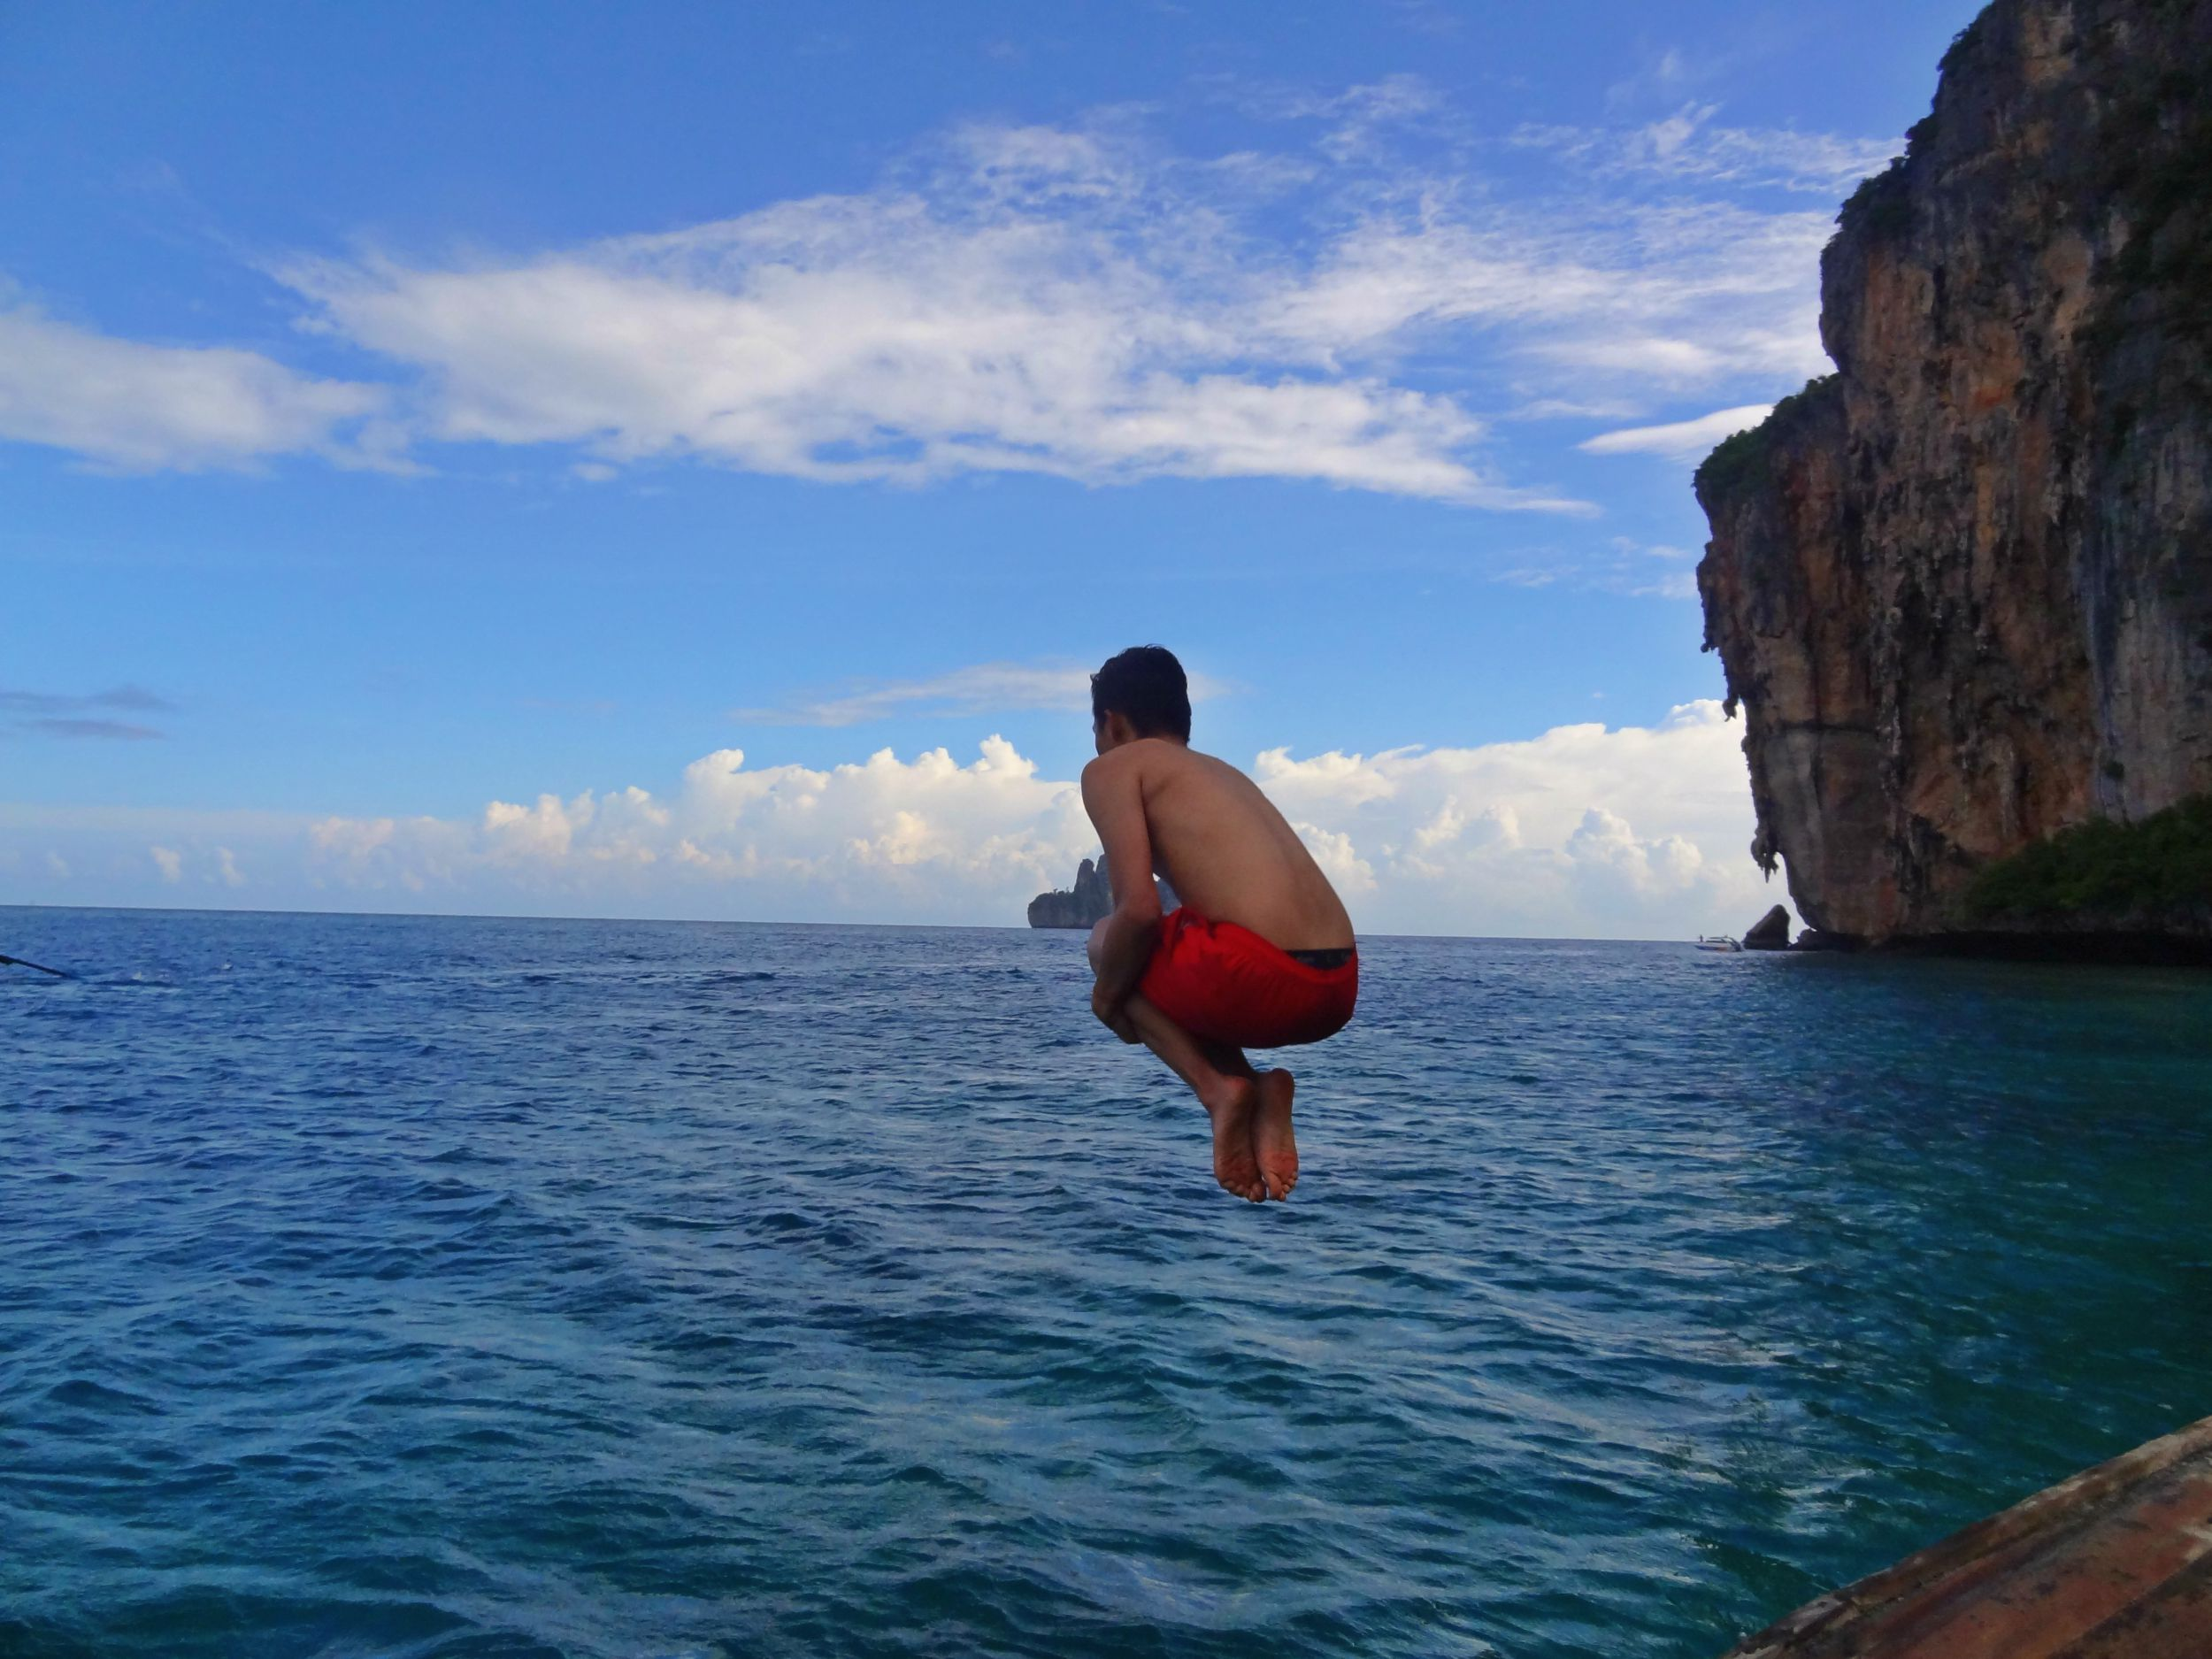 Aug 19: A boat trip to Maya Bay... snorkelling and all sorts. Off I go.